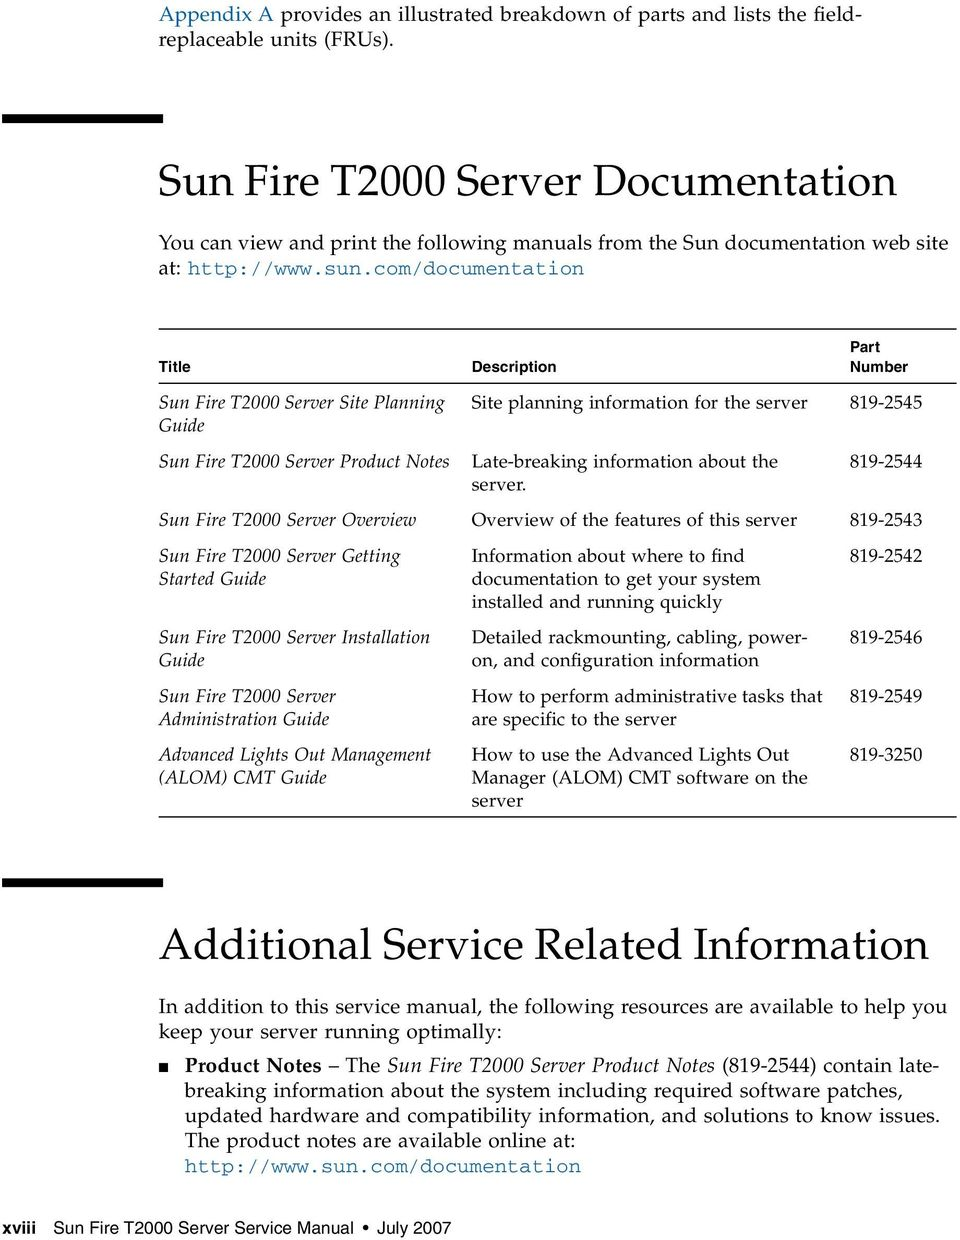 sun fire t2000 server service manual pdf rh docplayer net